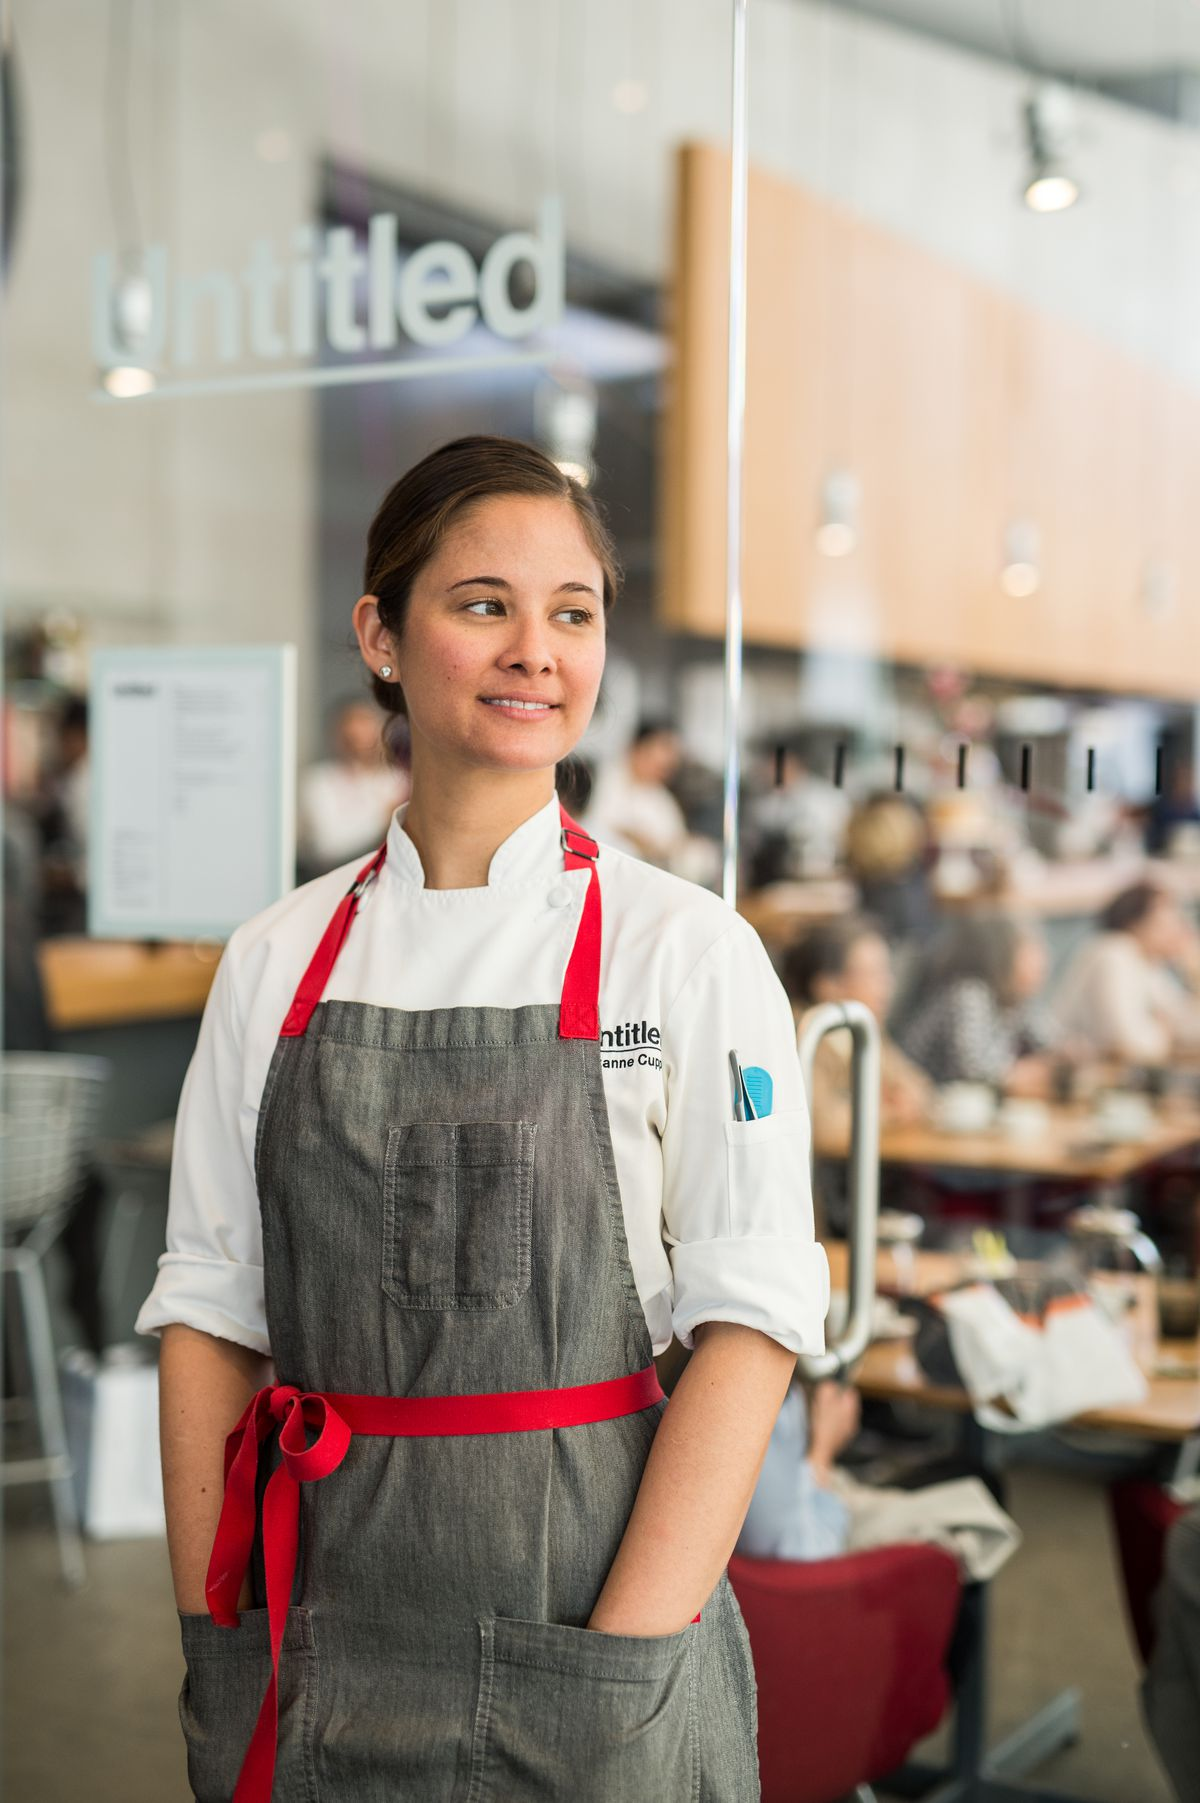 Suzanne Cupps wearing a grey chef apron at Untitled